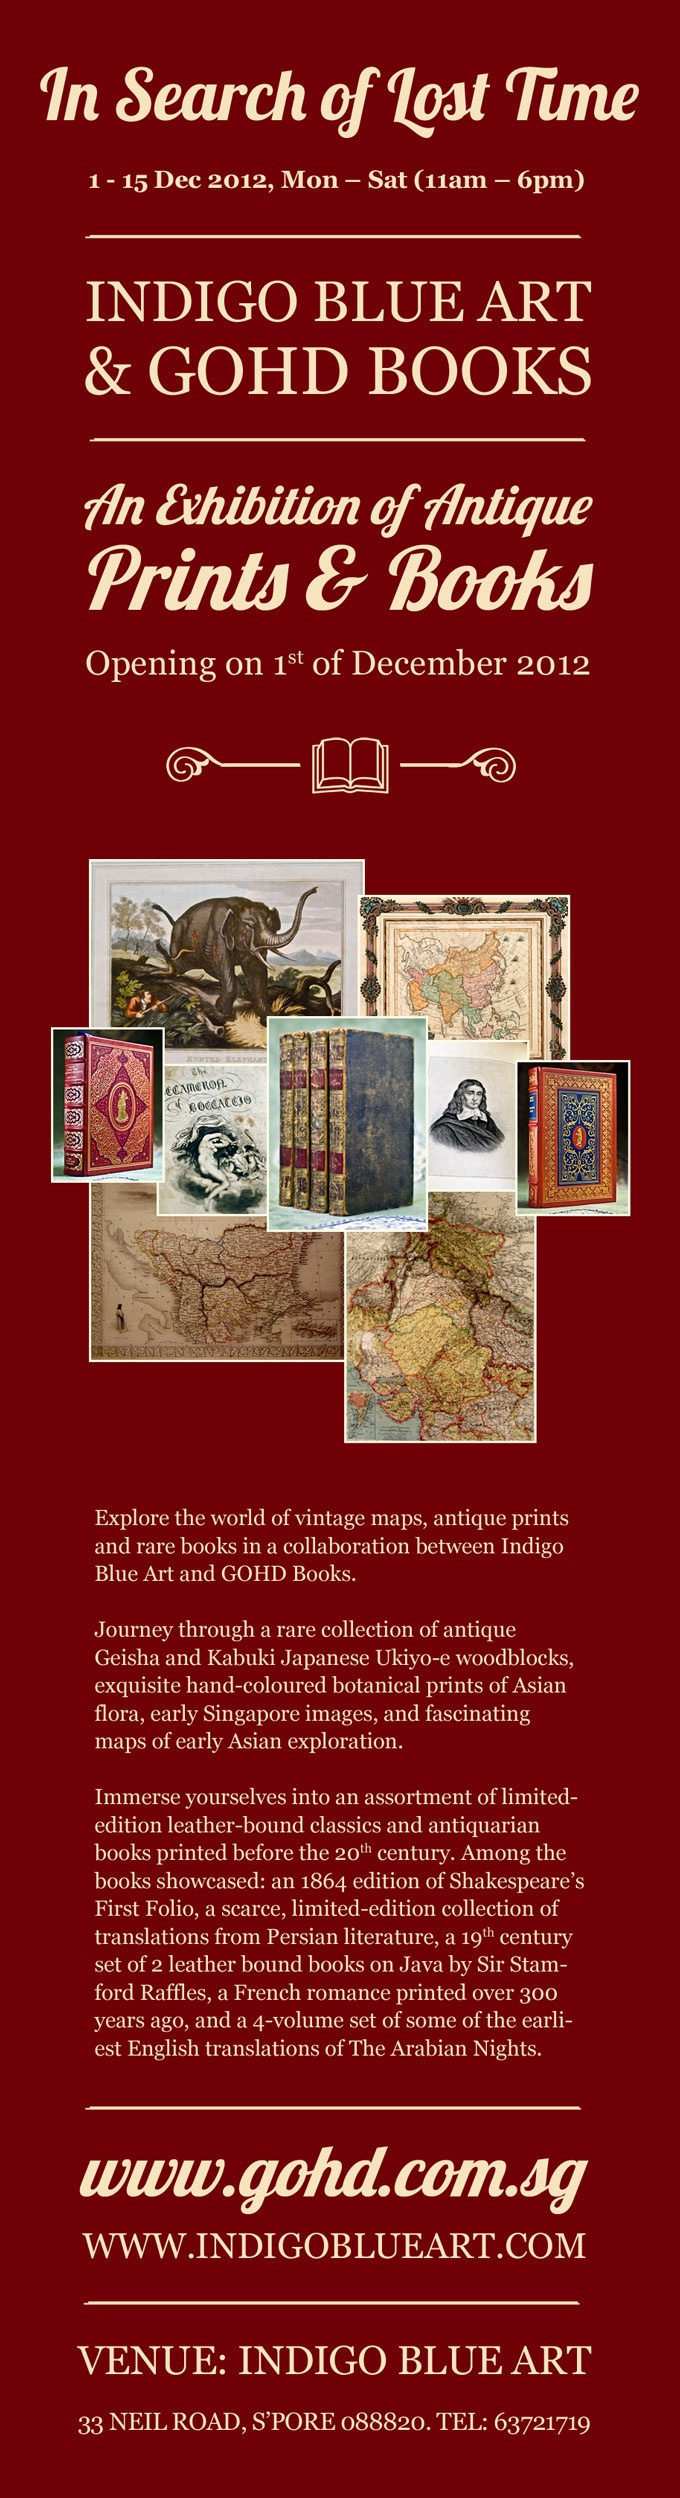 In Search of Lost Time - An Exhibition of Antique Books & Prints - in collaboration with Indigo Blue Art - 2012